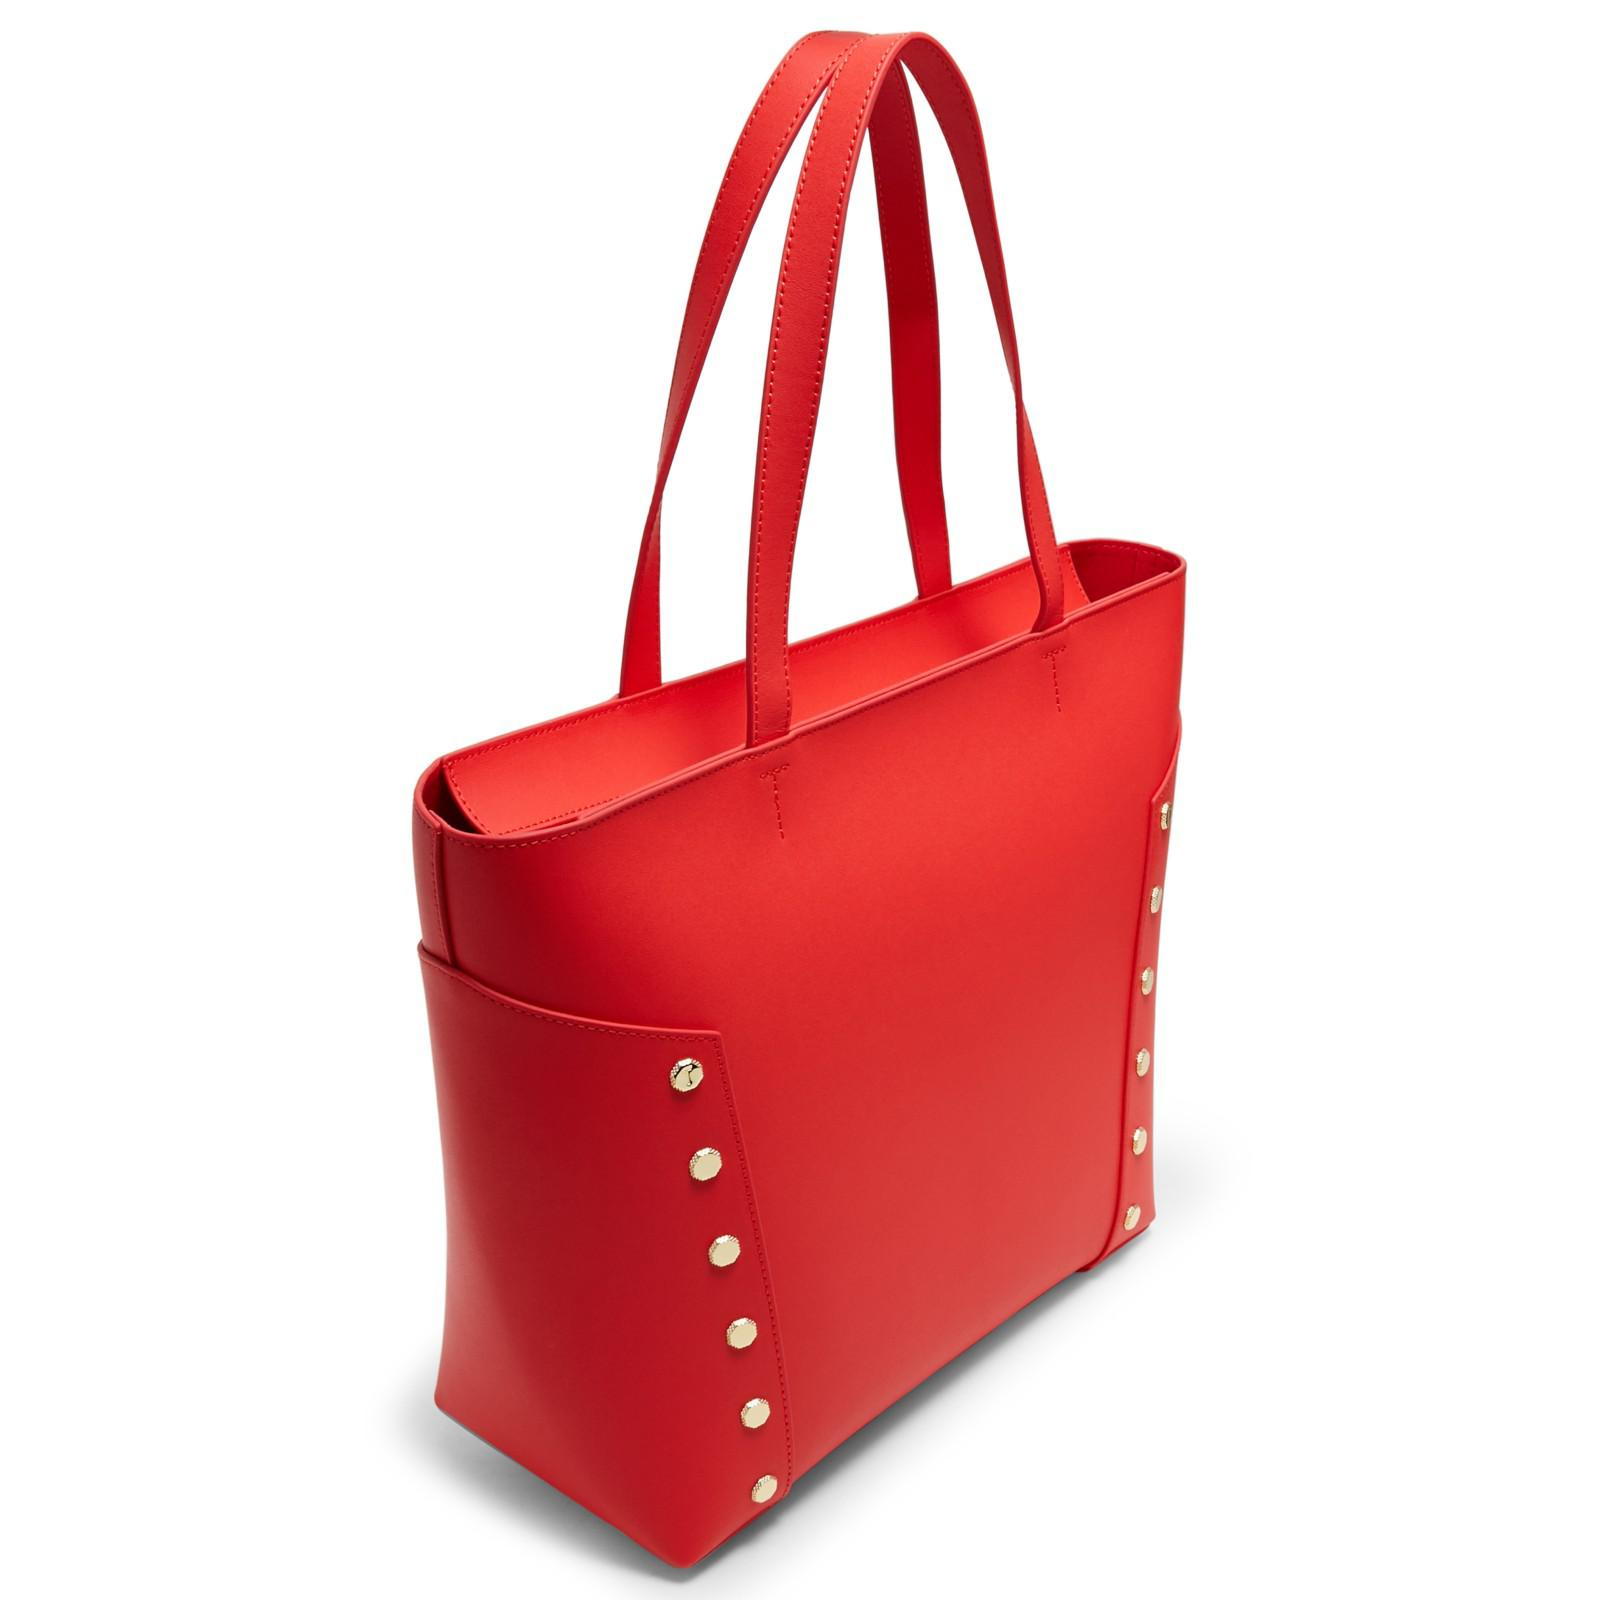 e4bc1f1de Ted Baker Tamiko Stud Edge Leather Shopper Bag in Red - Lyst